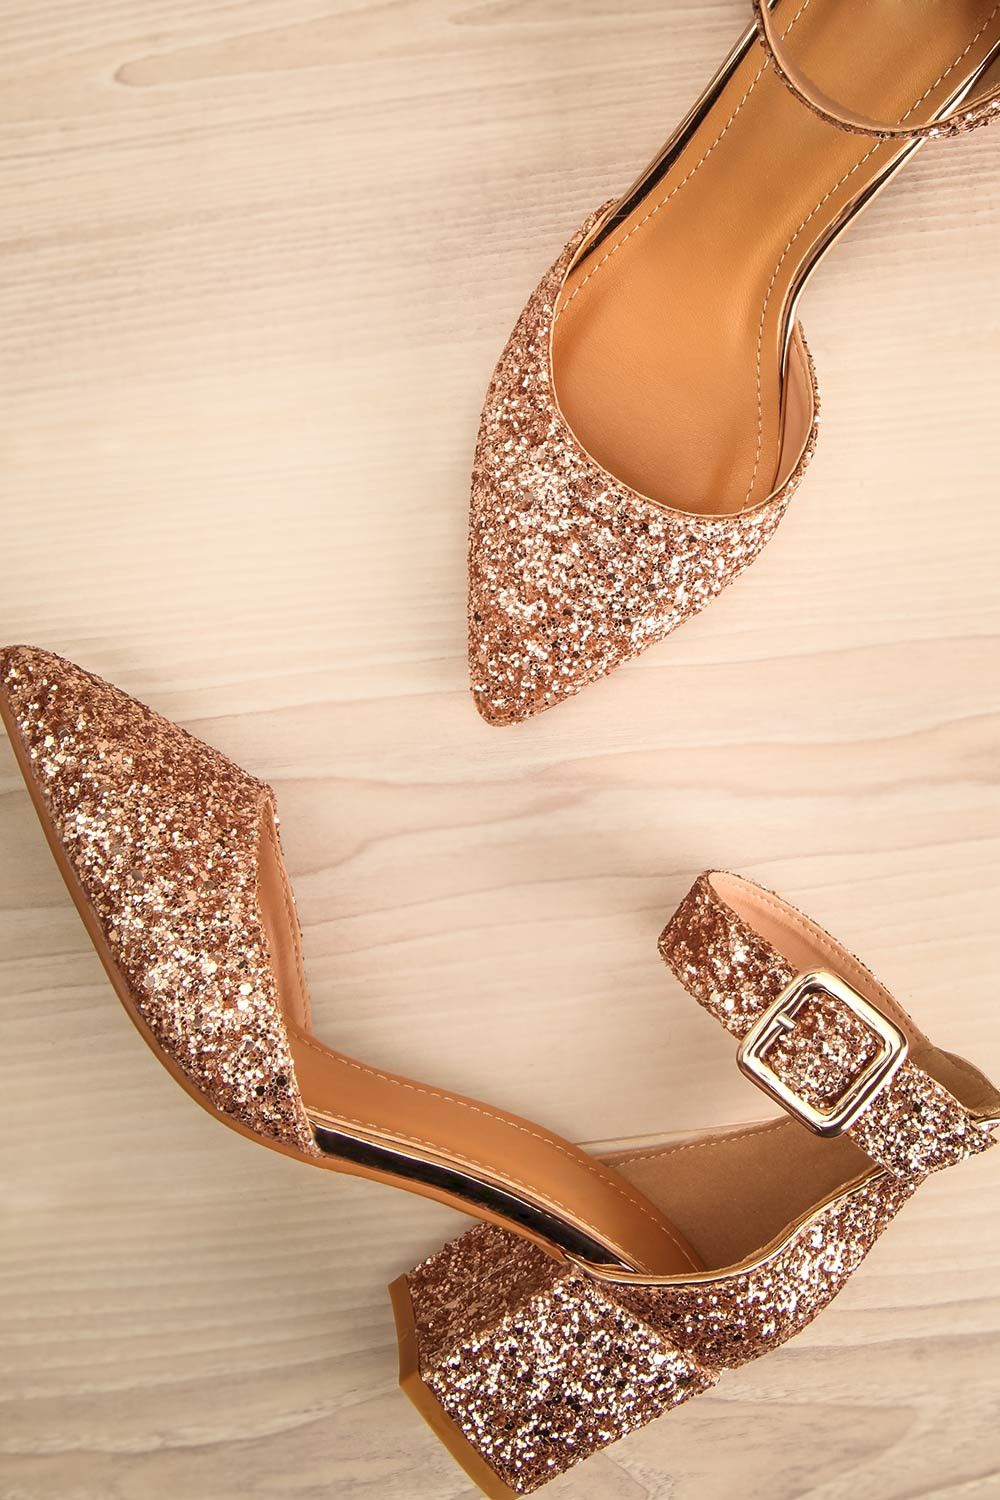 b4d740088dea Tairano Quartz  boutique1861   These trendy block heeled shoes are  exquisite and sparkly. The pointed toe make them at the height of style